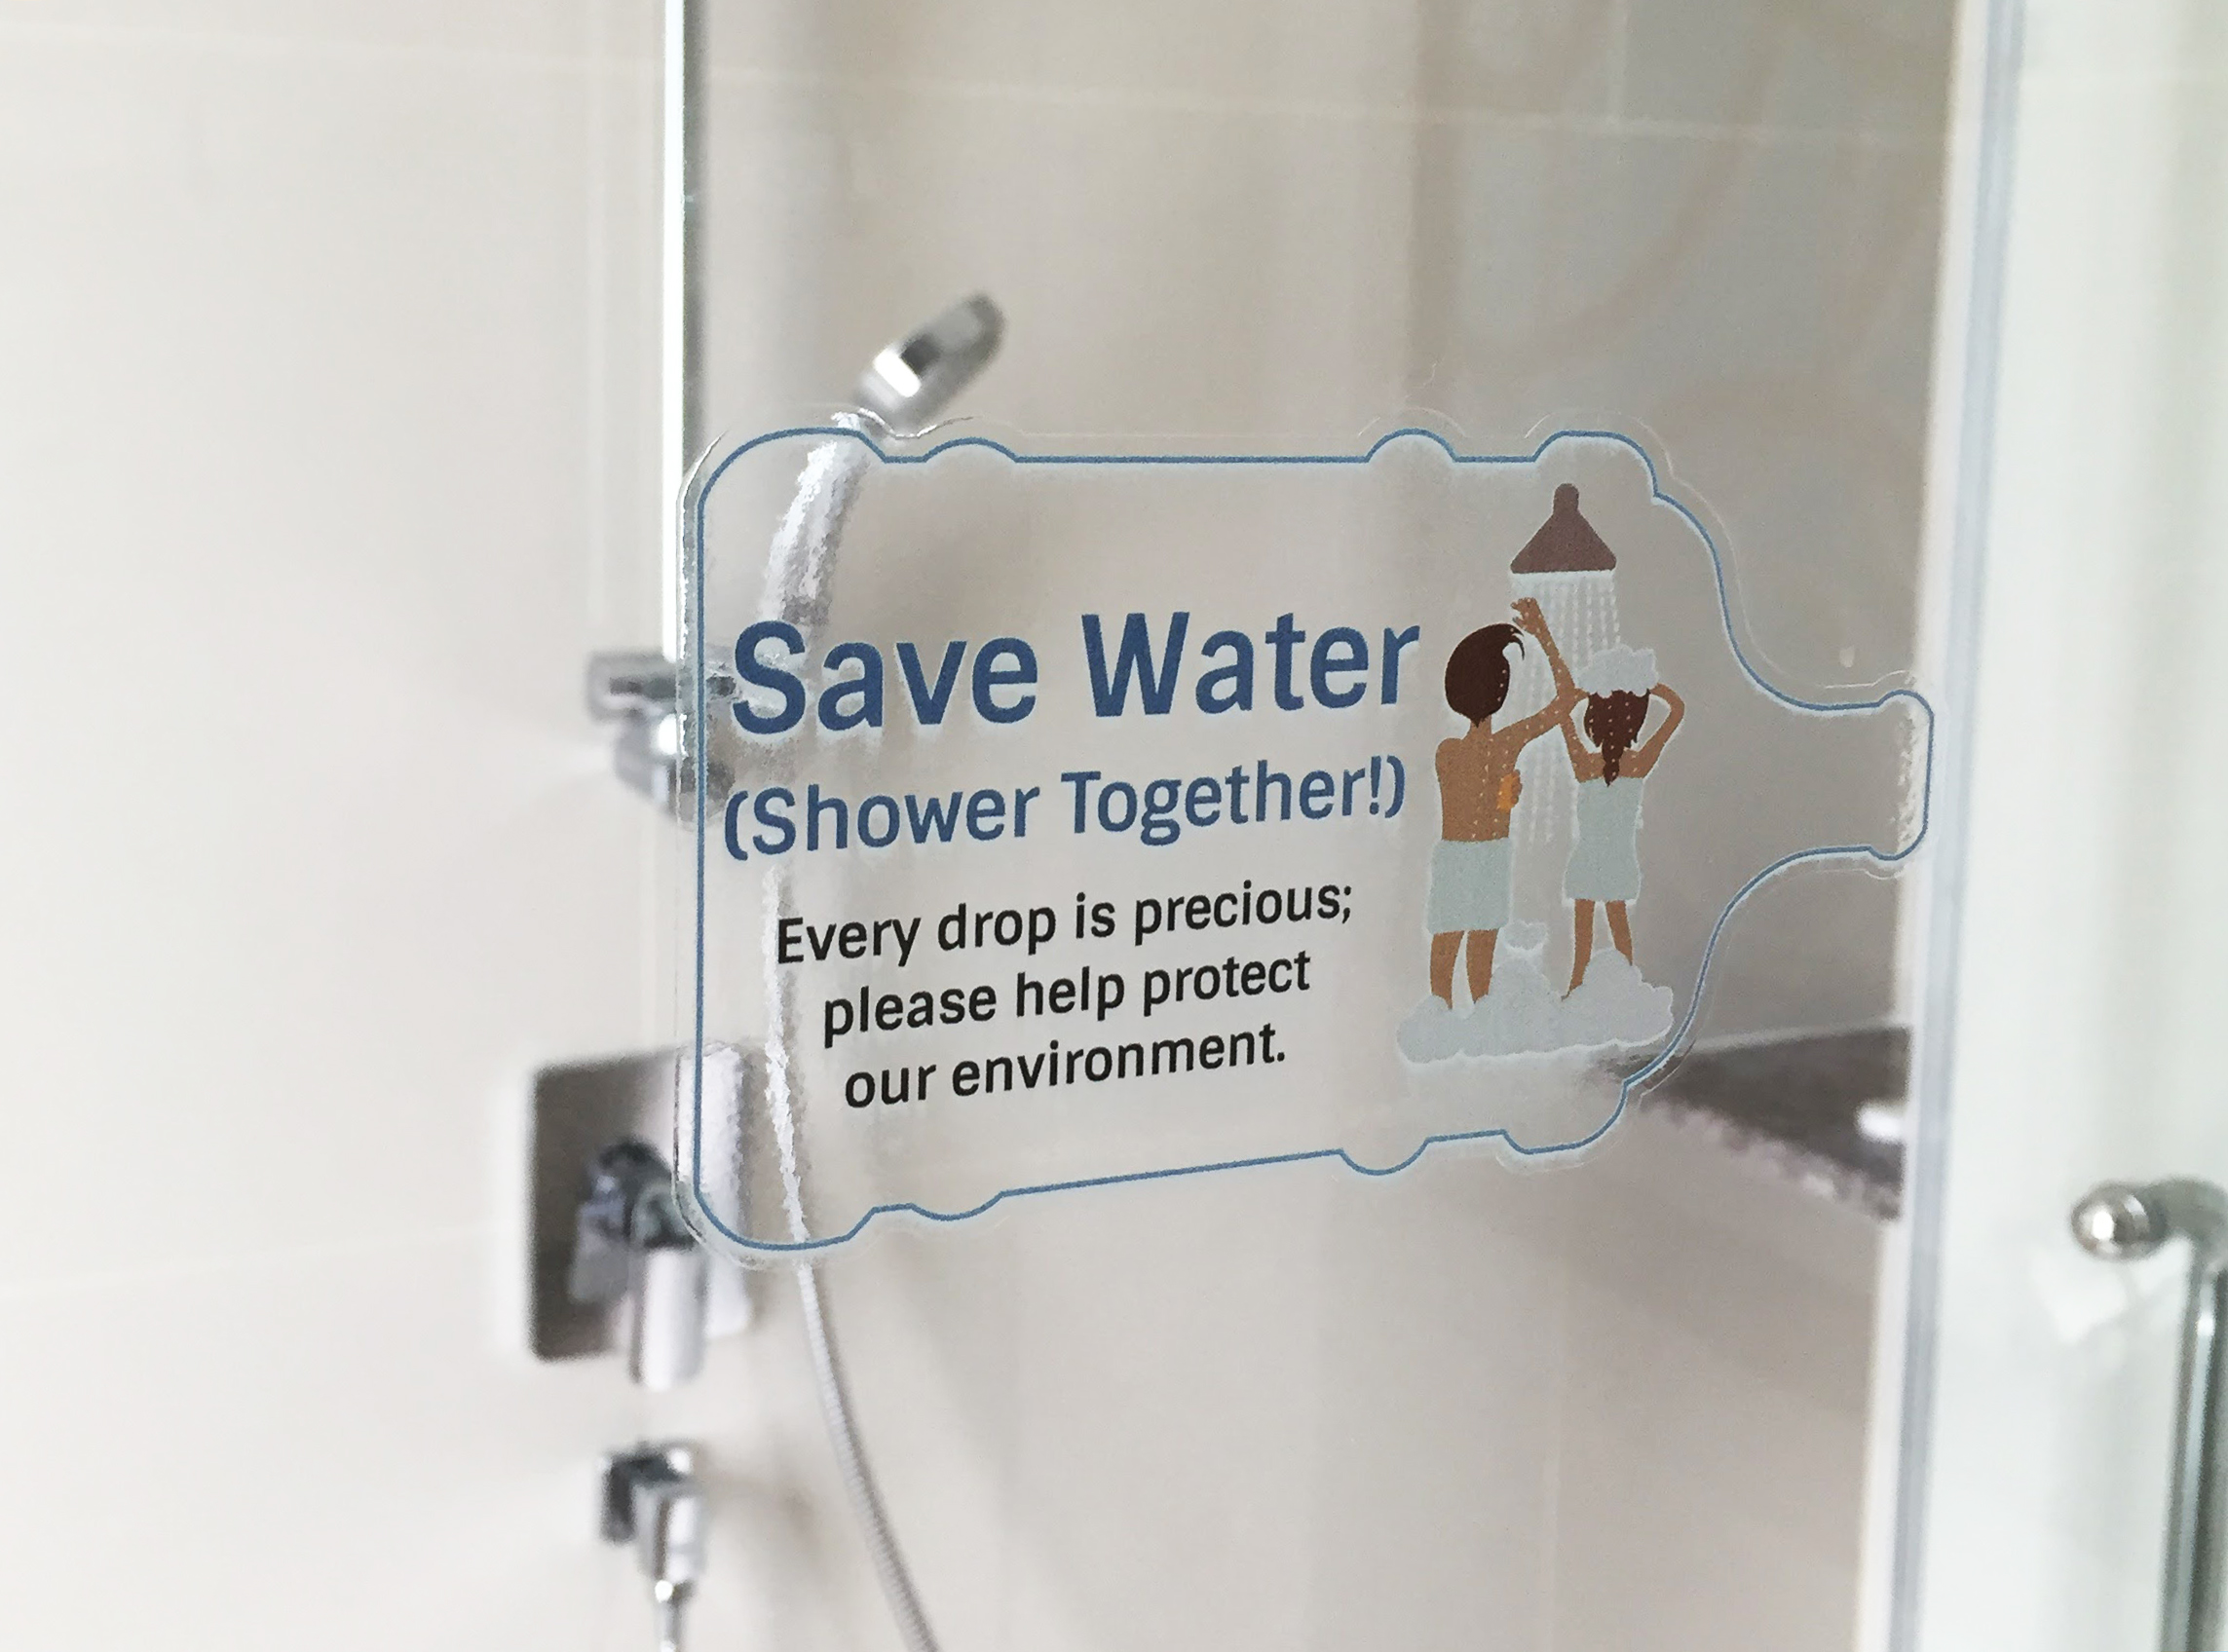 Hotelldusj med skriften Save Water Shower Together på døren